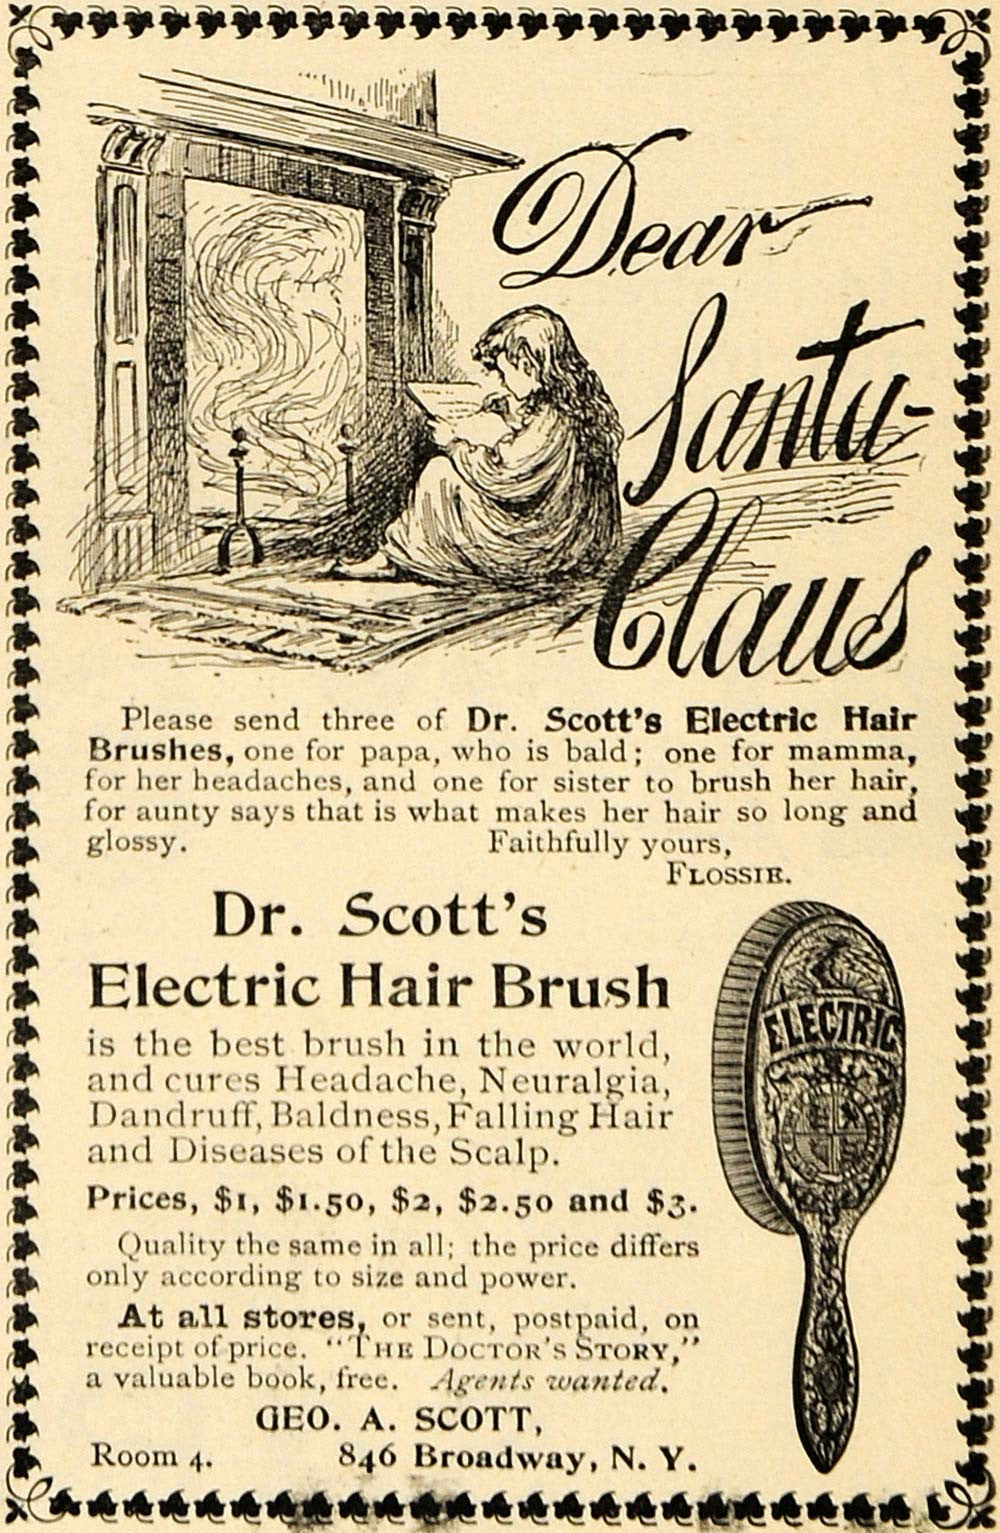 1895 Ad Scott Electric Hair Brush Headache Baldness Art - ORIGINAL TFO1 - Period Paper